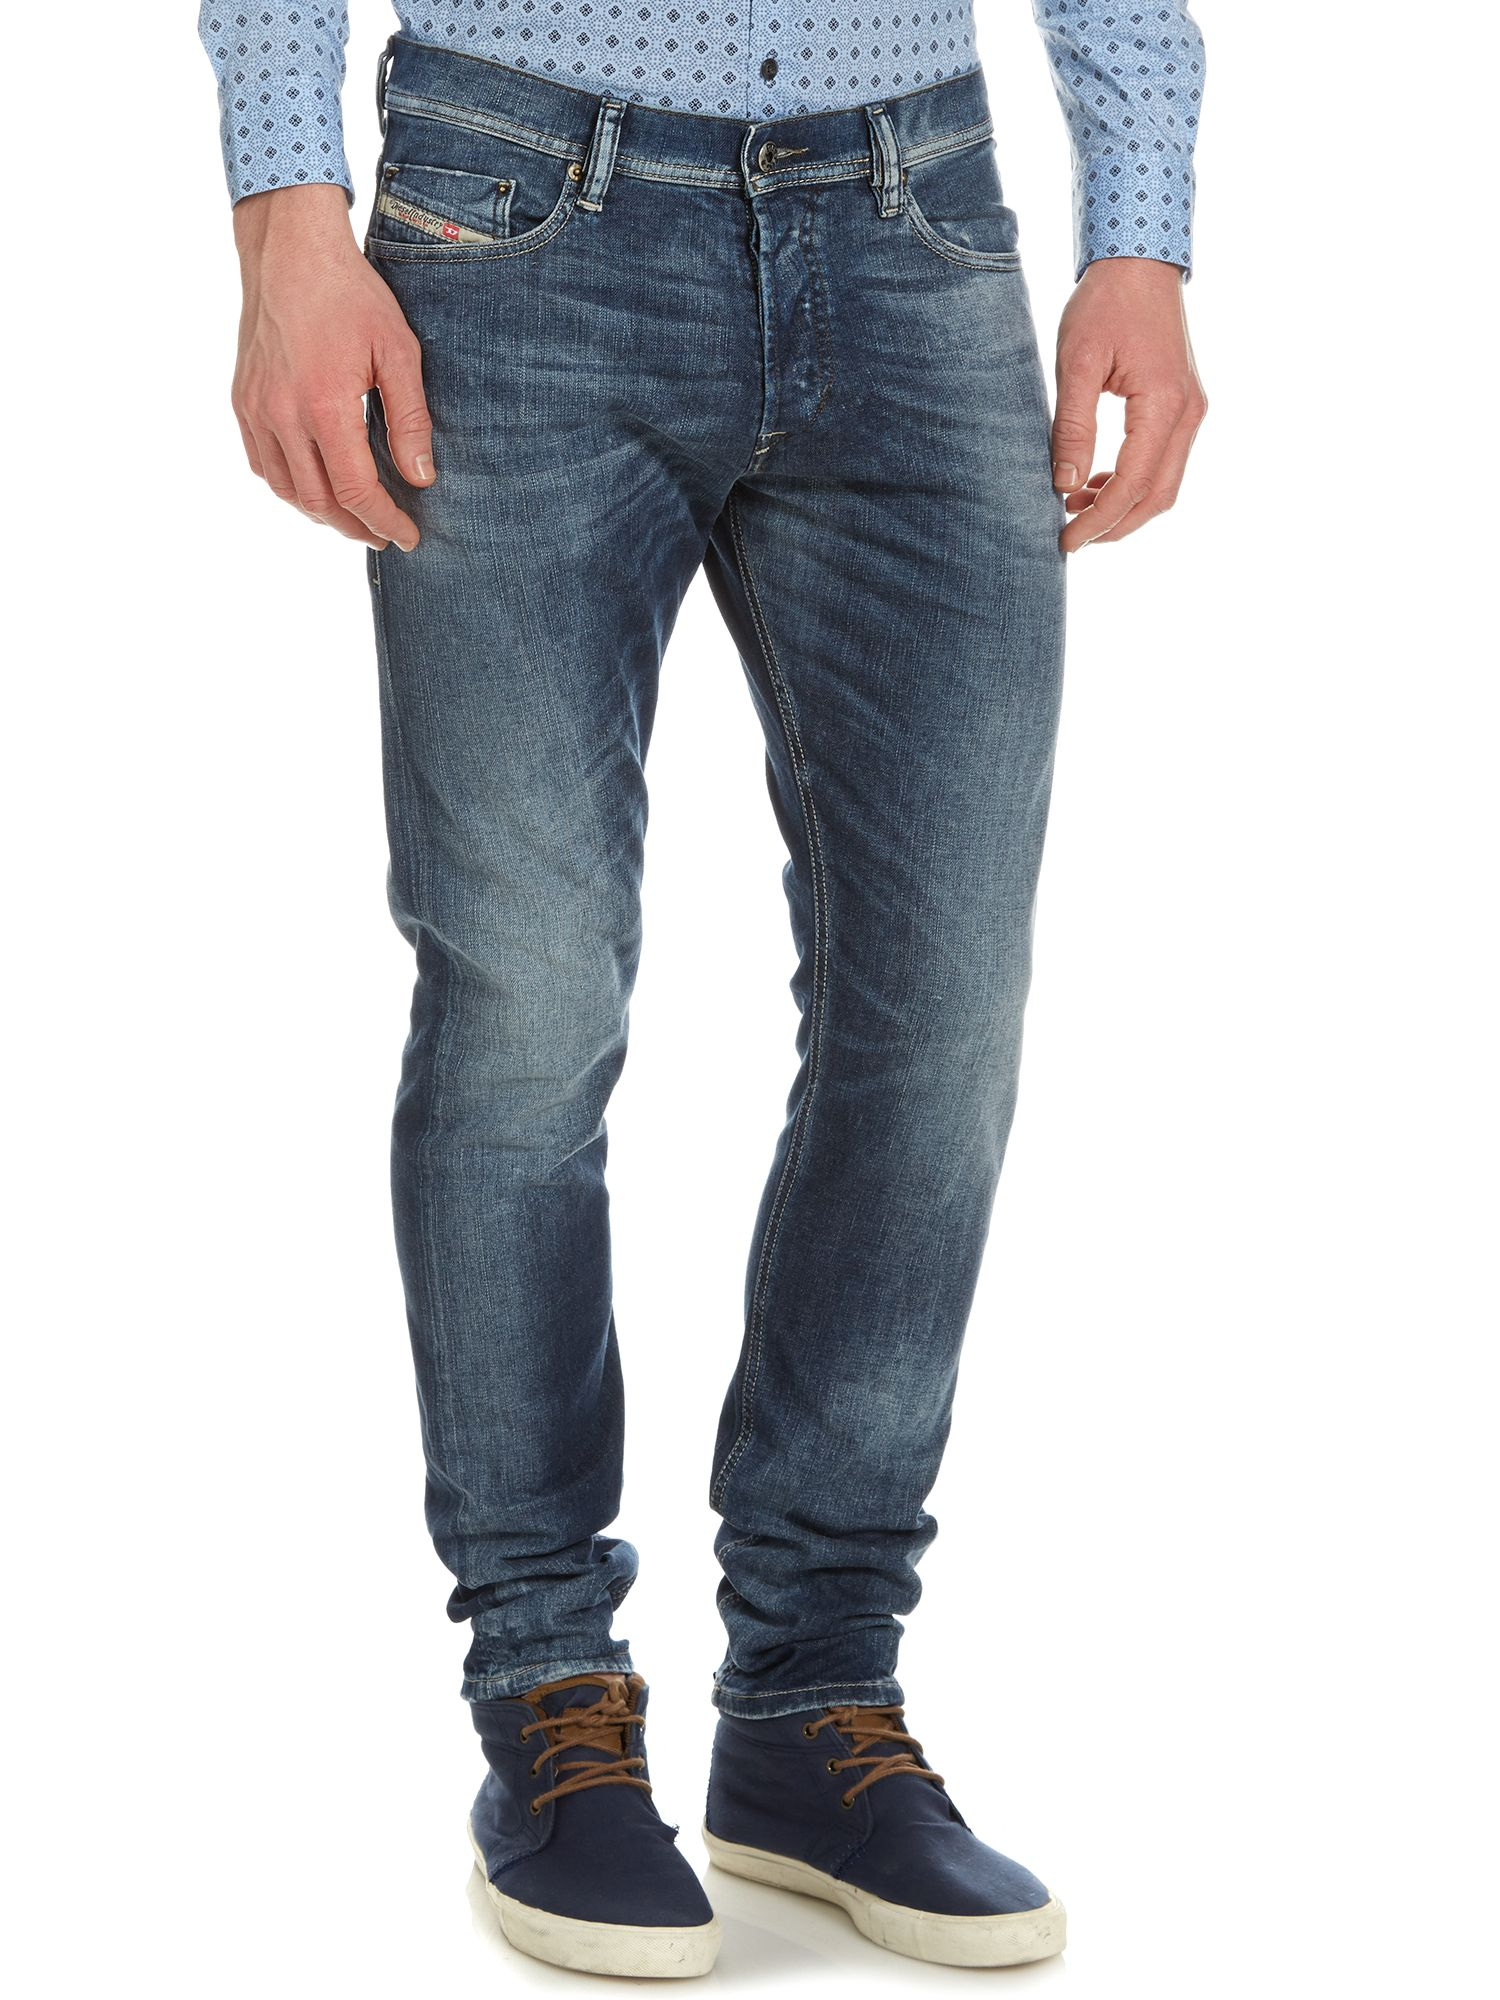 Tepphar 0827I slim fit jean